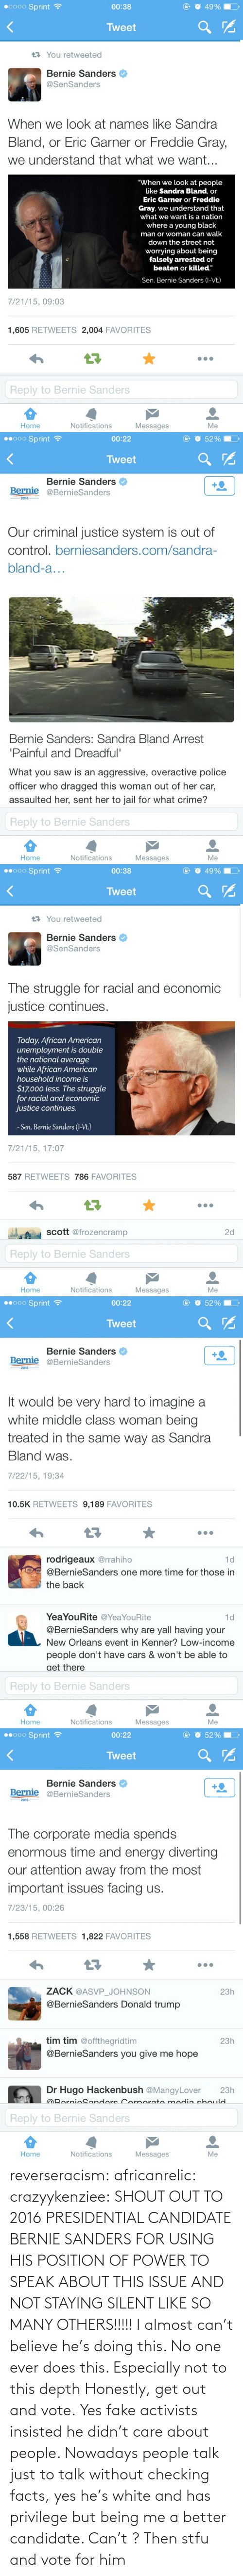 """T Care: O 49%  •0000 Sprint ?  00:38  Tweet  17 You retweeted  Bernie Sanders  @SenSanders  When we look at names like Sandra  Bland, or Eric Garner or Freddie Gray,  we understand that what we want...  """"When we look at people  like Sandra Bland, or  Eric Garner or Freddie  Gray, we understand that  what we want is a nation  where a young black  man or woman can walk  down the street not  worrying about being  falsely arrested or  beaten or killed.""""  Sen. Bernie Sanders (I-Vt.)  7/21/15, 09:03  1,605 RETWEETS 2,004 FAVORITES  17  Reply to Bernie Sanders  Home  Notifications  Messages  Me   00000 Sprint ?  O52%  00:22  Tweet  Bernie Sanders  Bernie @BernieSanders  2016  Our criminal justice system is out of  control. berniesanders.com/sandra-  bland-a...  Bernie Sanders: Sandra Bland Arrest  'Painful and Dreadful'  What you saw is an aggressive, overactive police  officer who dragged this woman out of her car,  assaulted her, sent her to jail for what crime?  Reply to Bernie Sanders  Home  Notifications  Messages  Me   O 49%  00000 Sprint ?  00:38  Tweet  17 You retweeted  Bernie Sanders  @SenSanders  The struggle for racial and economic  justice continues.  Today, African American  unemployment is double  the national average  while African American  household income is  $17,000 less. The struggle  for racial and economic  justice continues.  Sen. Bernie Sanders (1-Vt.)  7/21/15, 17:07  587 RETWEETS 786 FAVORITES  scott @frozencramp  2d  Reply to Bernie Sanders  Home  Notifications  Messages  Me   O52%  00000 Sprint ?  00:22  Tweet  Bernie Sanders  Bernie @BernieSanders  2016  It would be very hard to imagine a  white middle class woman being  treated in the same way as Sandra  Bland was.  7/22/15, 19:34  10.5K RETWEETS 9,189 FAVORITES  rodrigeaux @rrahiho  1d  @BernieSanders one more time for those in  the back  YeaYouRite @YeaYouRite  1d  @BernieSanders why are yall having your  New Orleans event in Kenner? Low-income  people don't have cars & won't be able to  ge"""